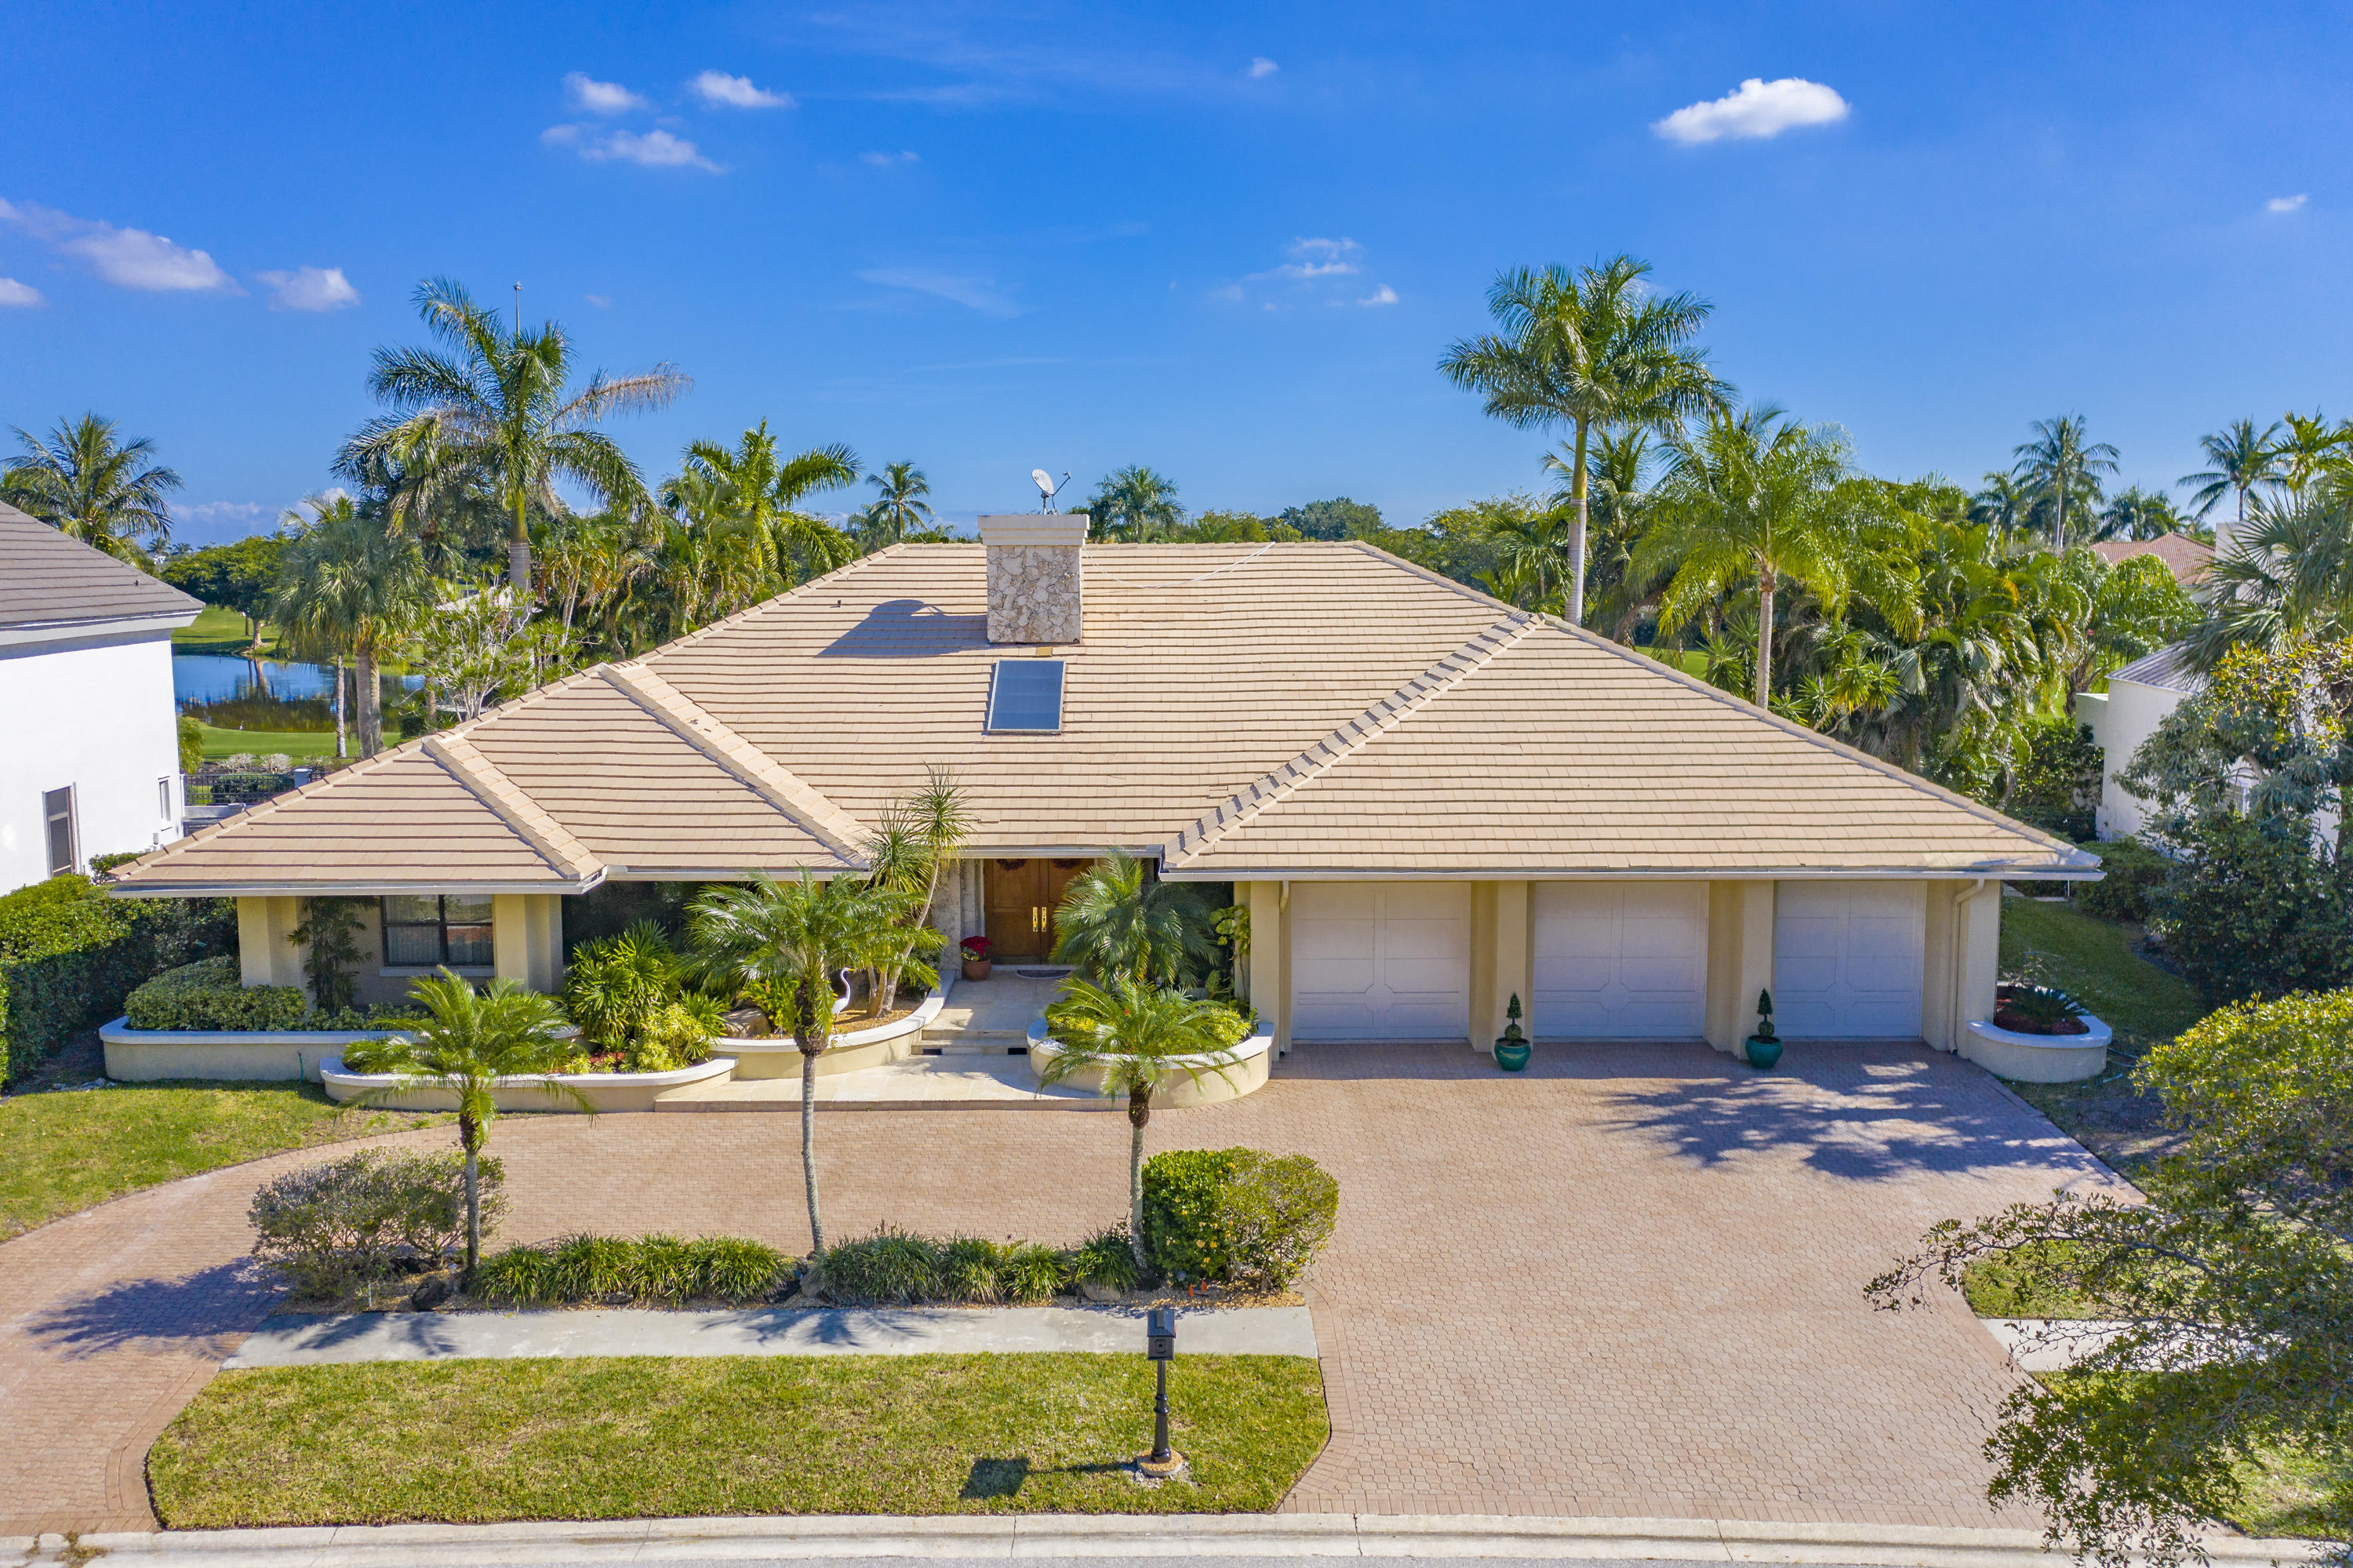 Photo of 7859 Mandarin Drive W, Boca Raton, FL 33433